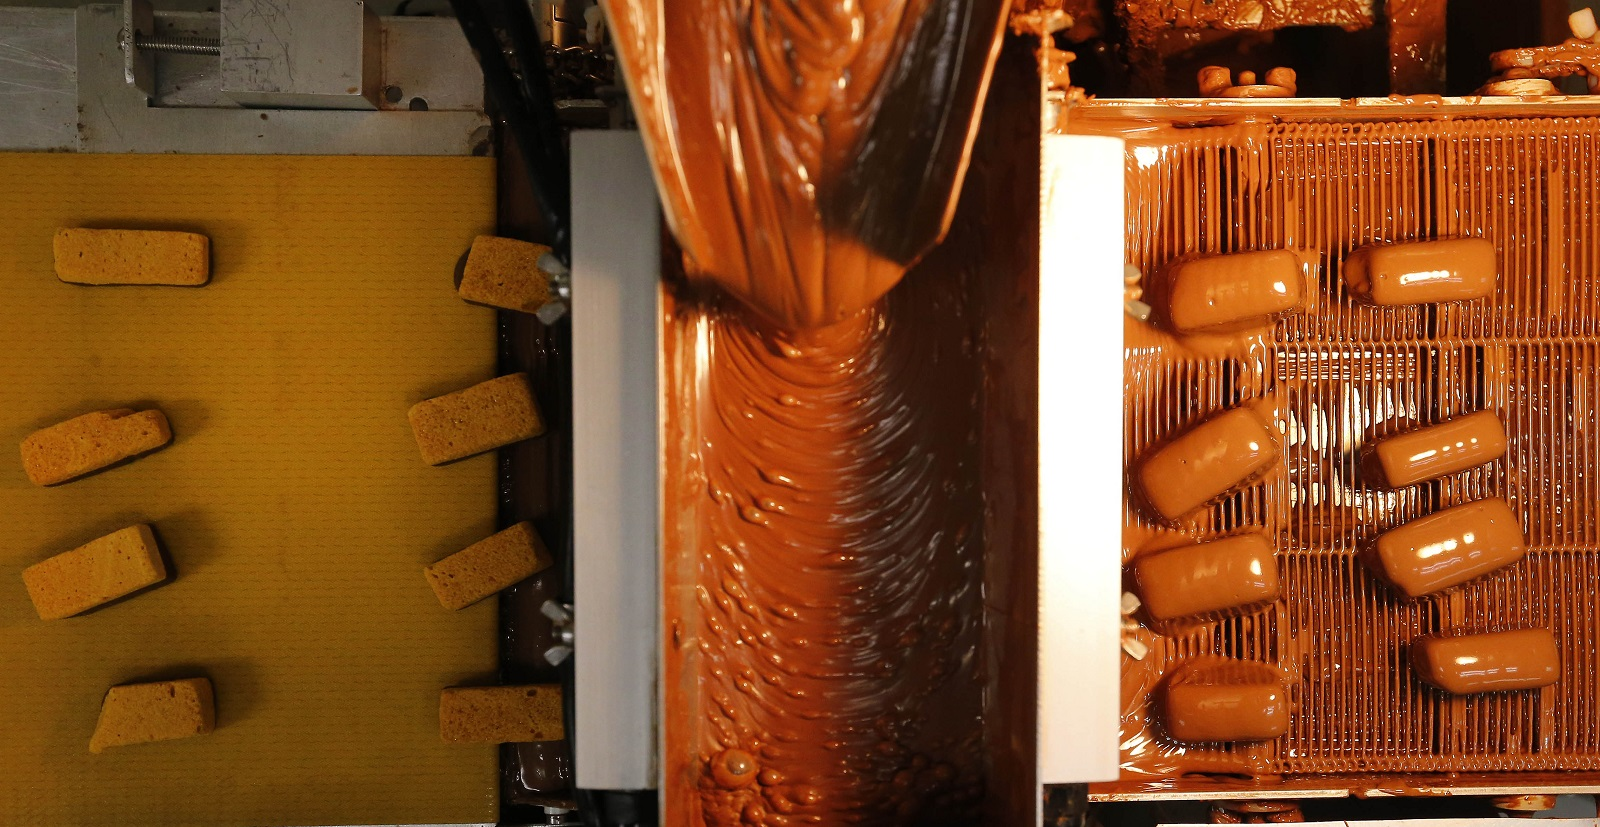 Sponge candy gets its chocolate covering at Ko-Ed Candies. (Mark Mulville/Buffalo News)